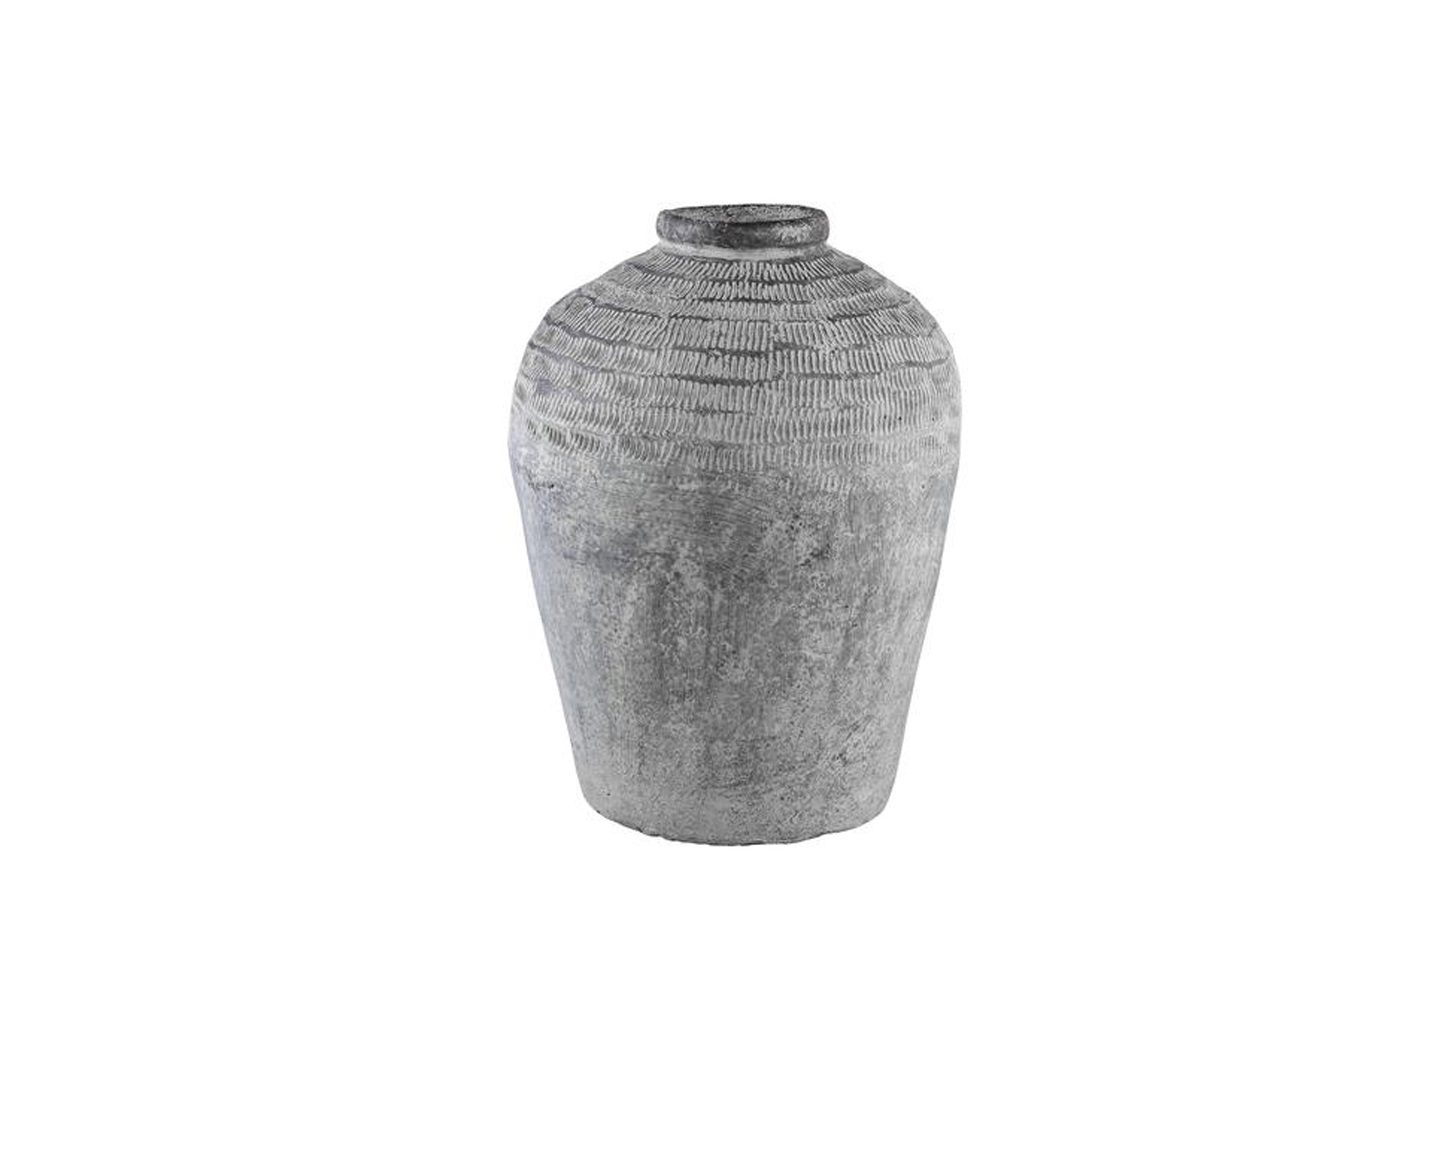 Ptmd Collection Nuo Grey Cement Jug Round Small Border 678100 Large Woonaccessoires